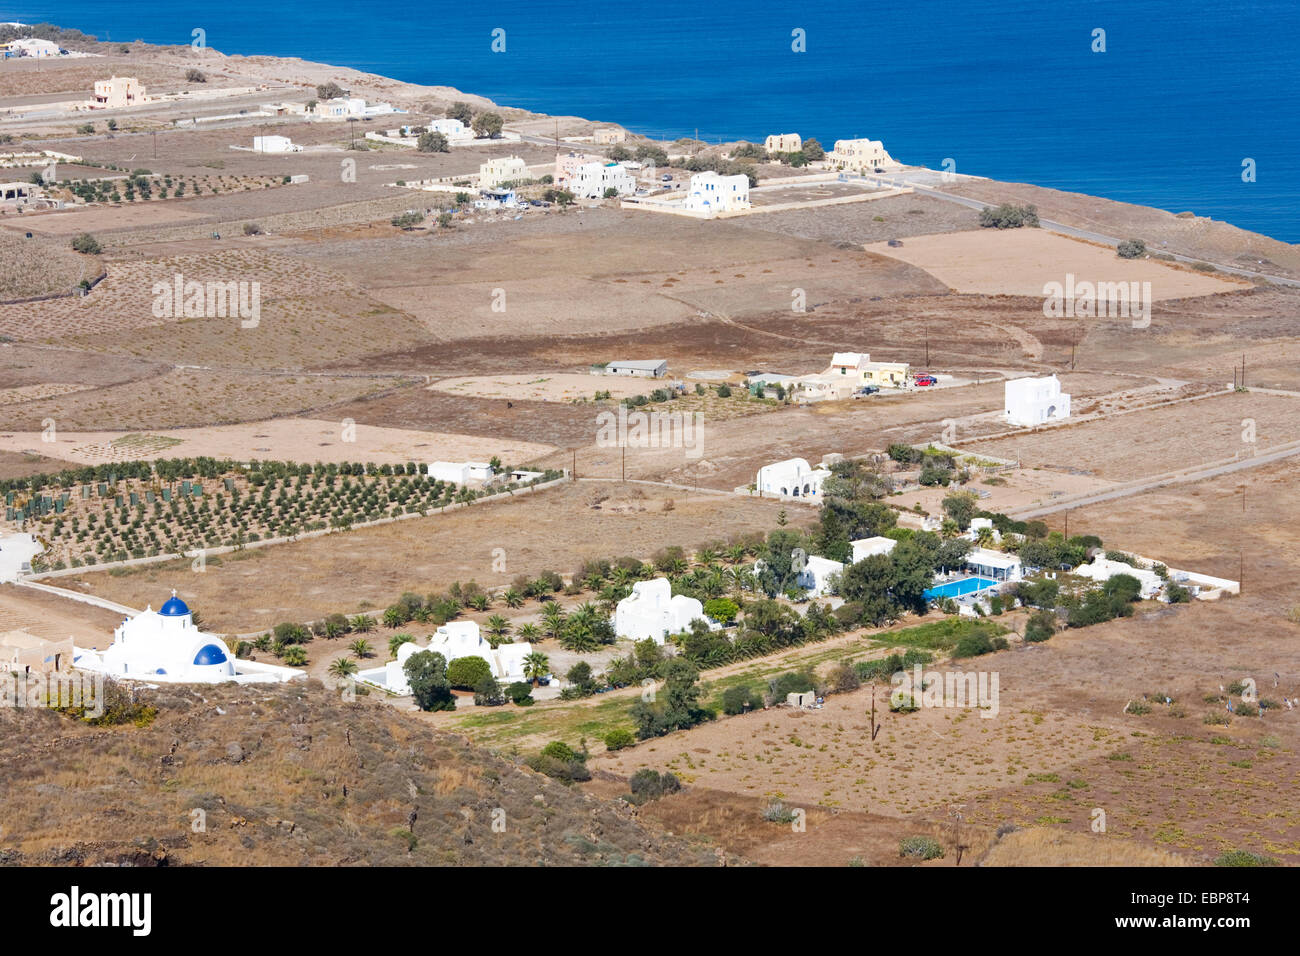 Ia, Santorini, South Aegean, Greece. View over the island's arid coastal plain from hillside near Finikia. - Stock Image